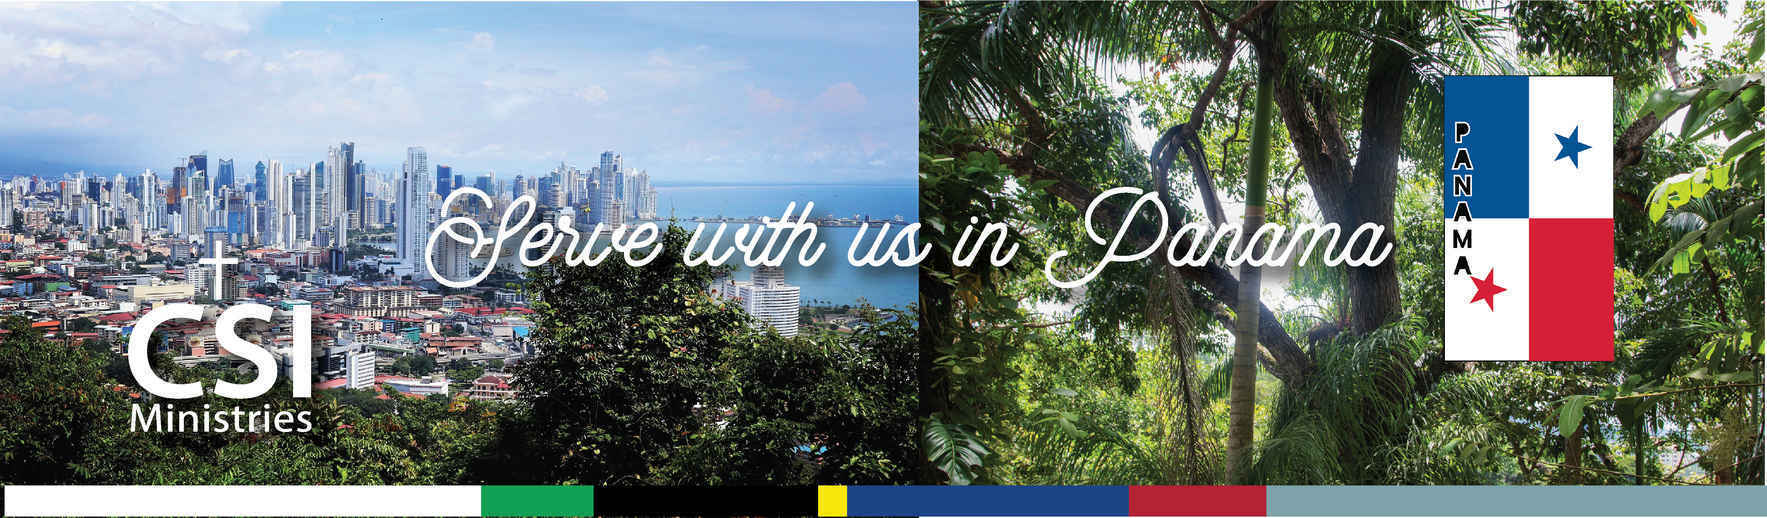 Donate to a CSI Team doing Ministry in Panama image